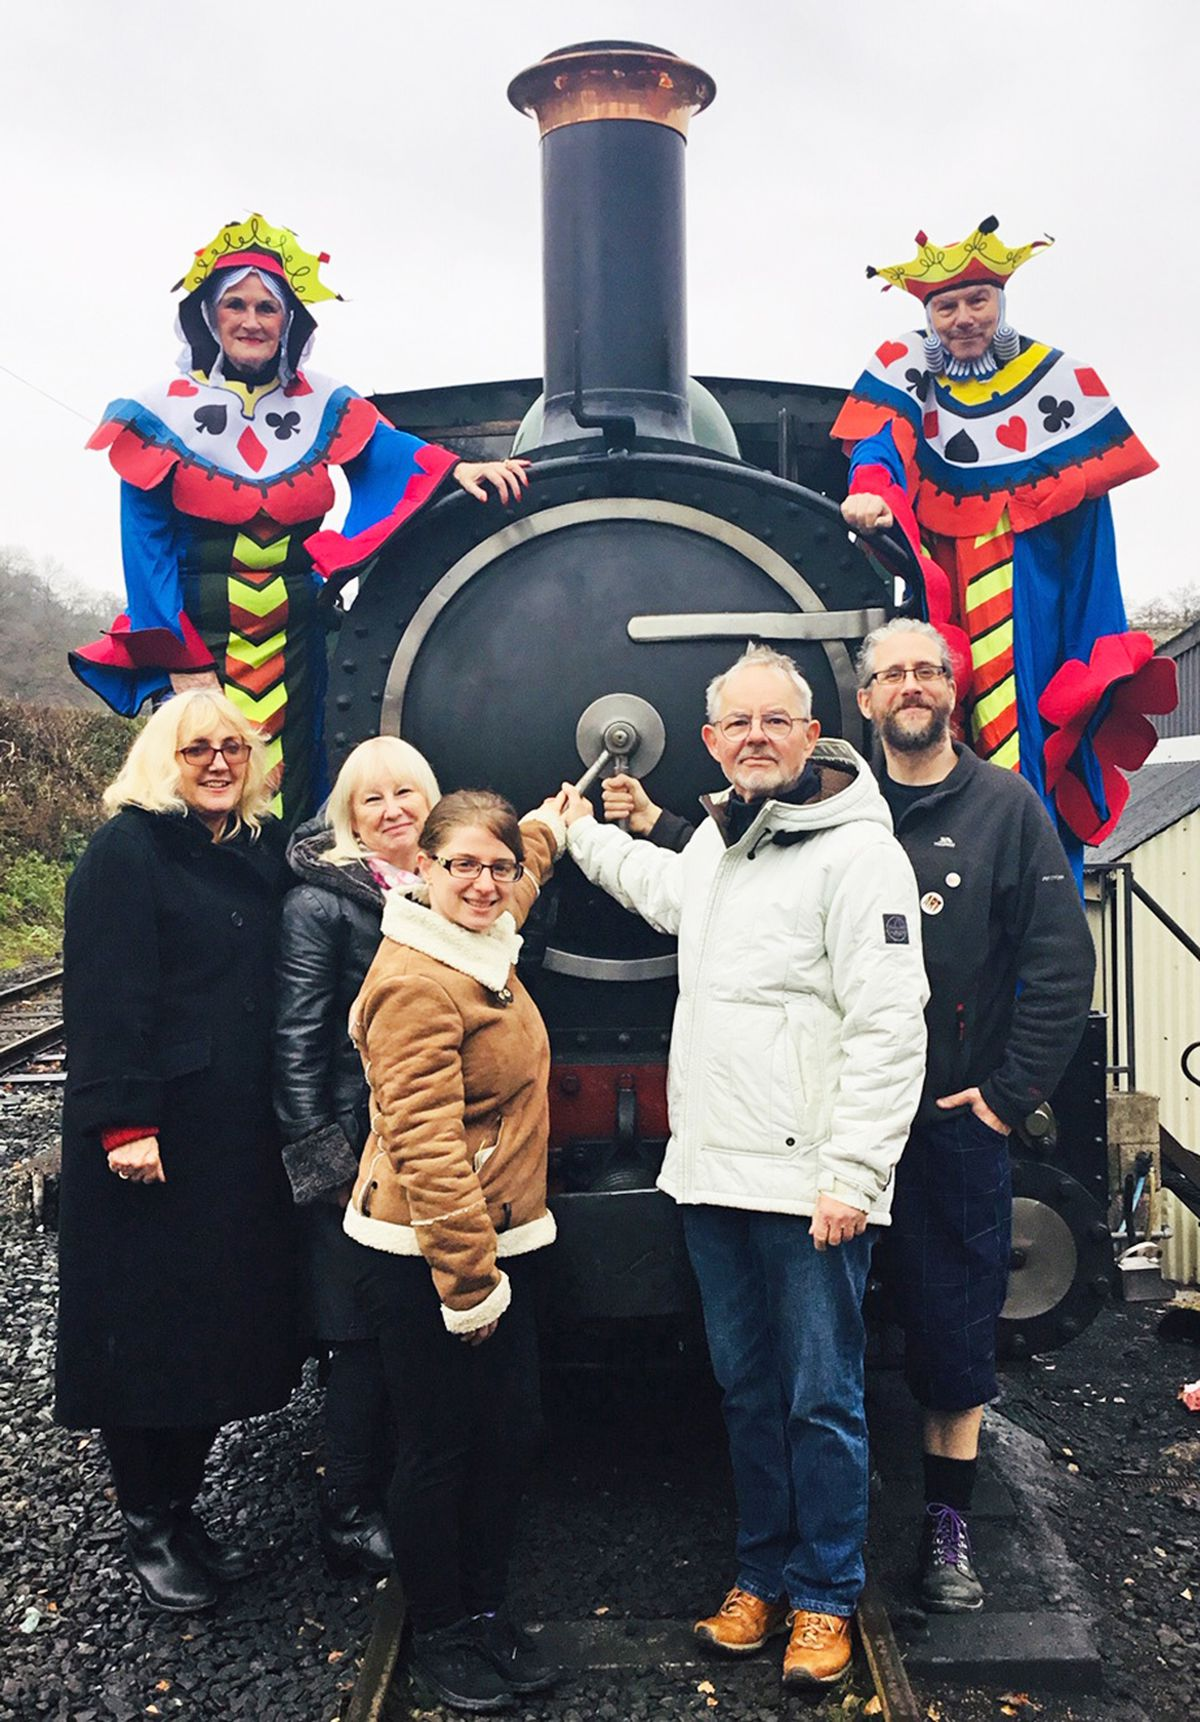 Judith and Stuart Marvin of Montgomeryshire Community Drama Association, Tim Parkes, Alan Bleasdale and Lesley-Ann Bleasdale of Rebel Alliance, Cheryl Walker of British Sign Language, and Julie Ball take to the railway stage before next July's theatre experience. Photo: C Davies